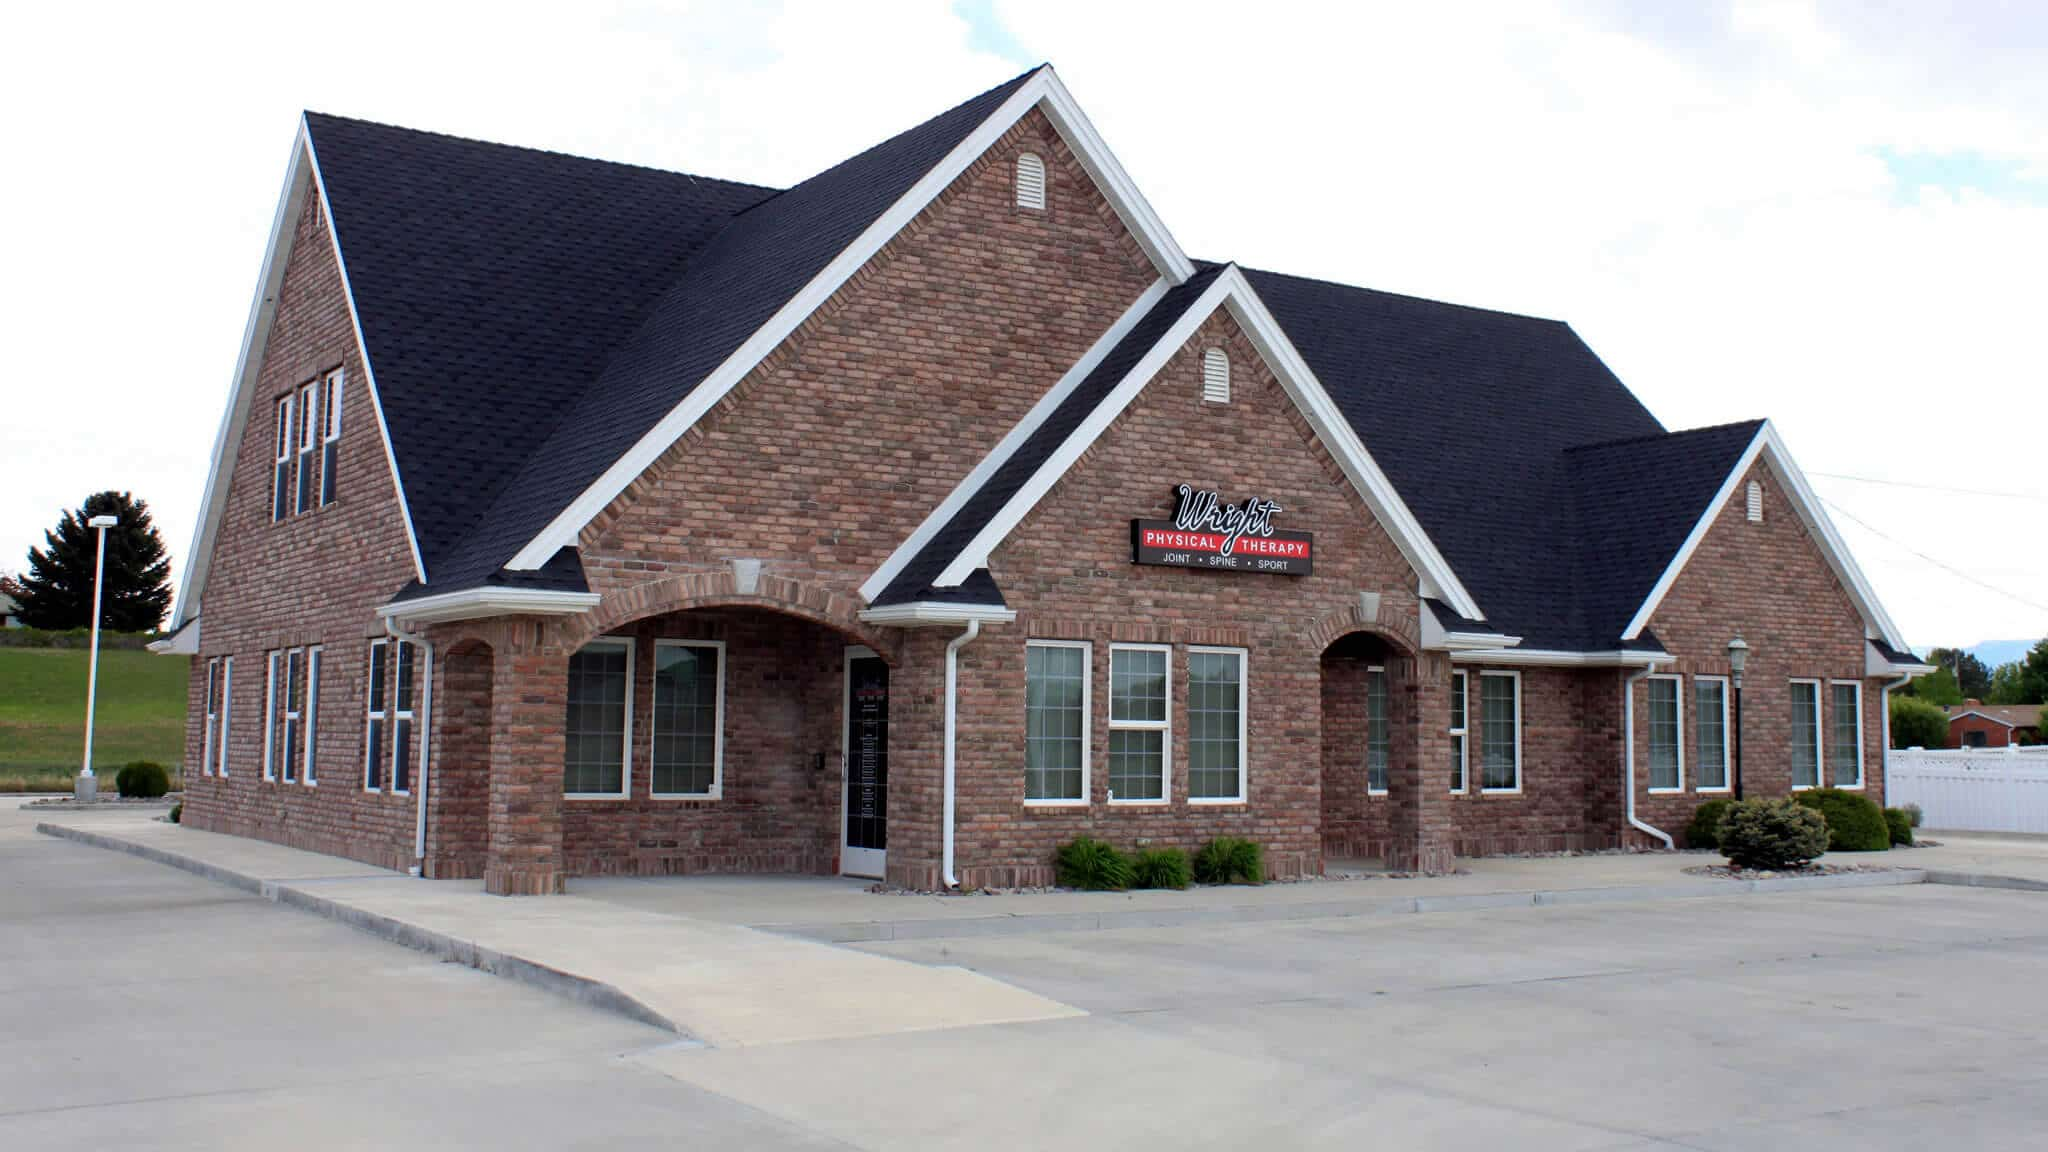 Burley Wright Physical Therapy